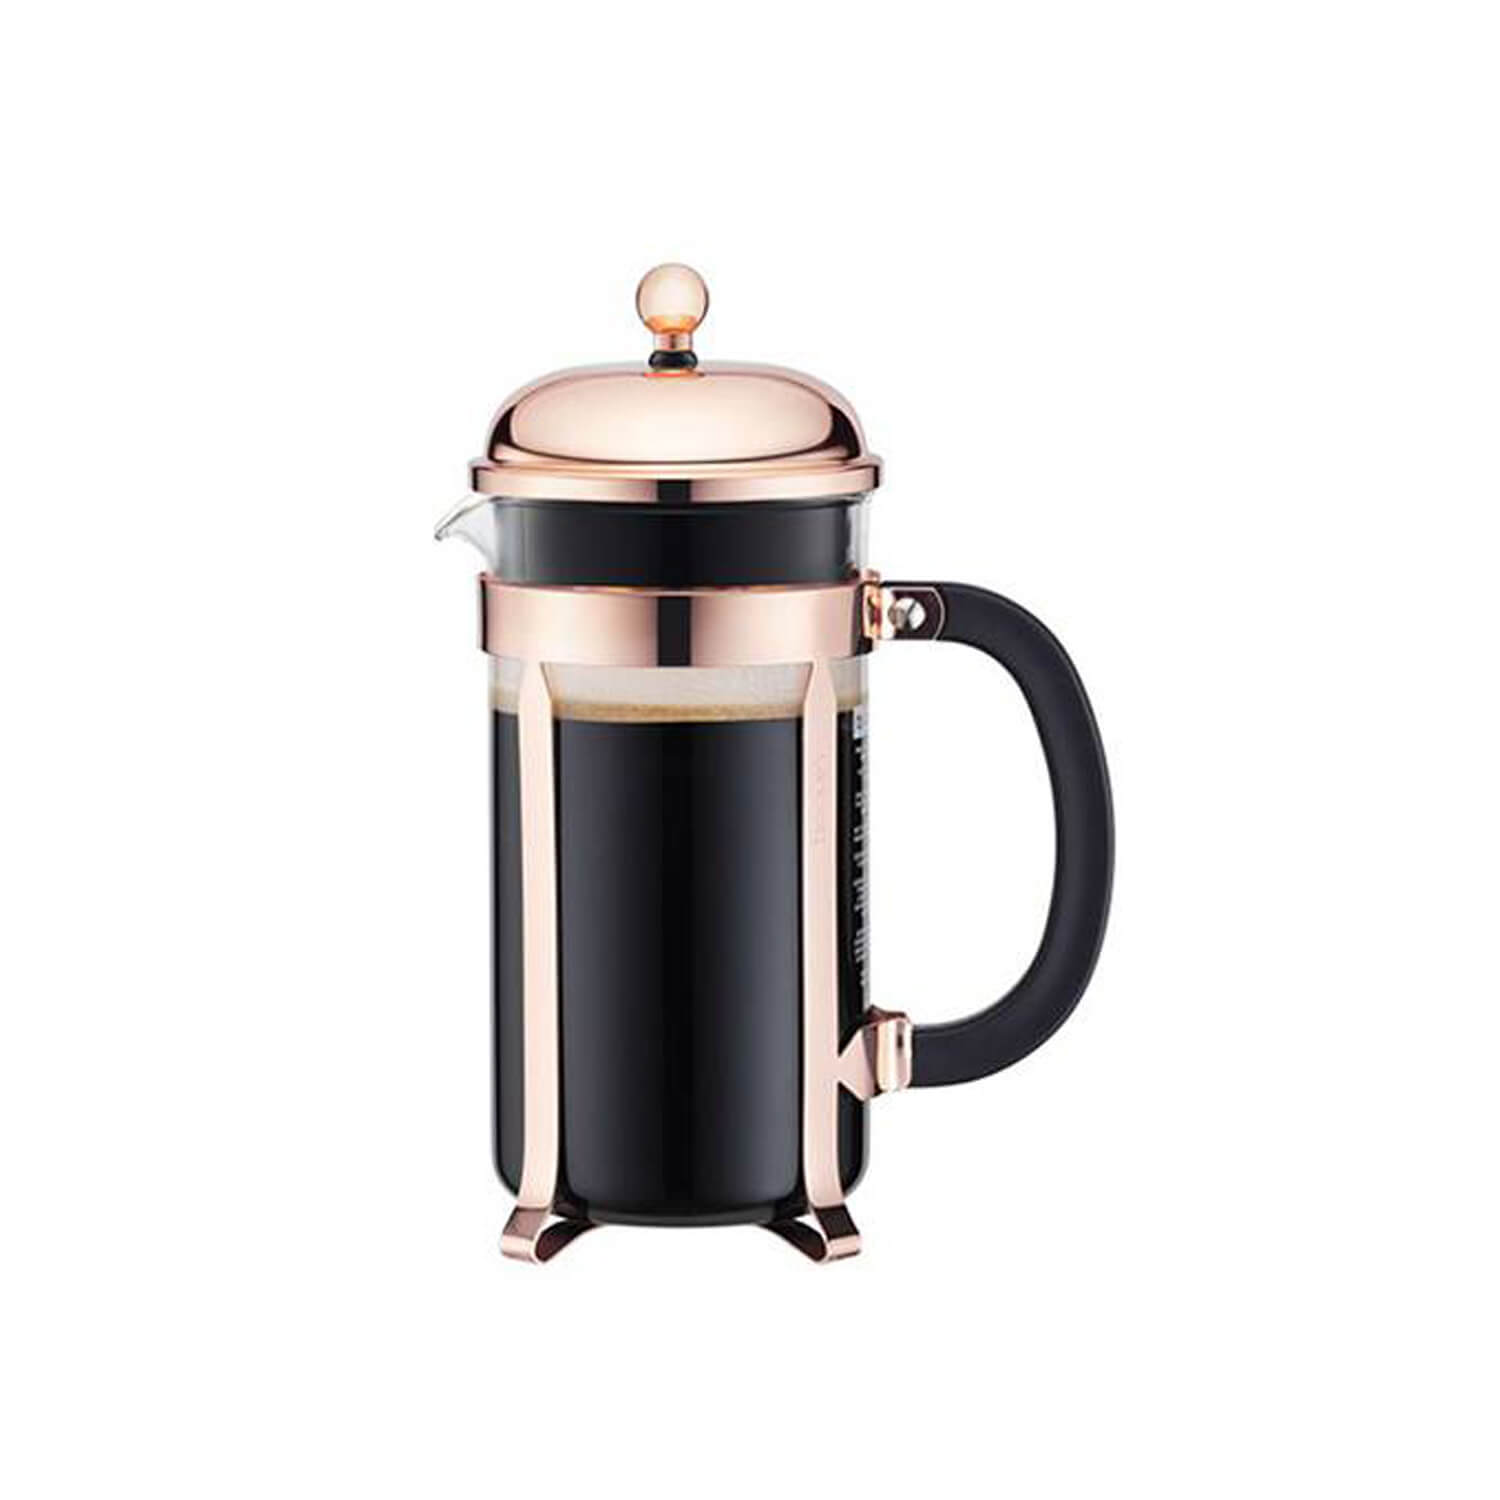 Bodum - Cafetière - Chambord - Copper - 3 Cups -  0